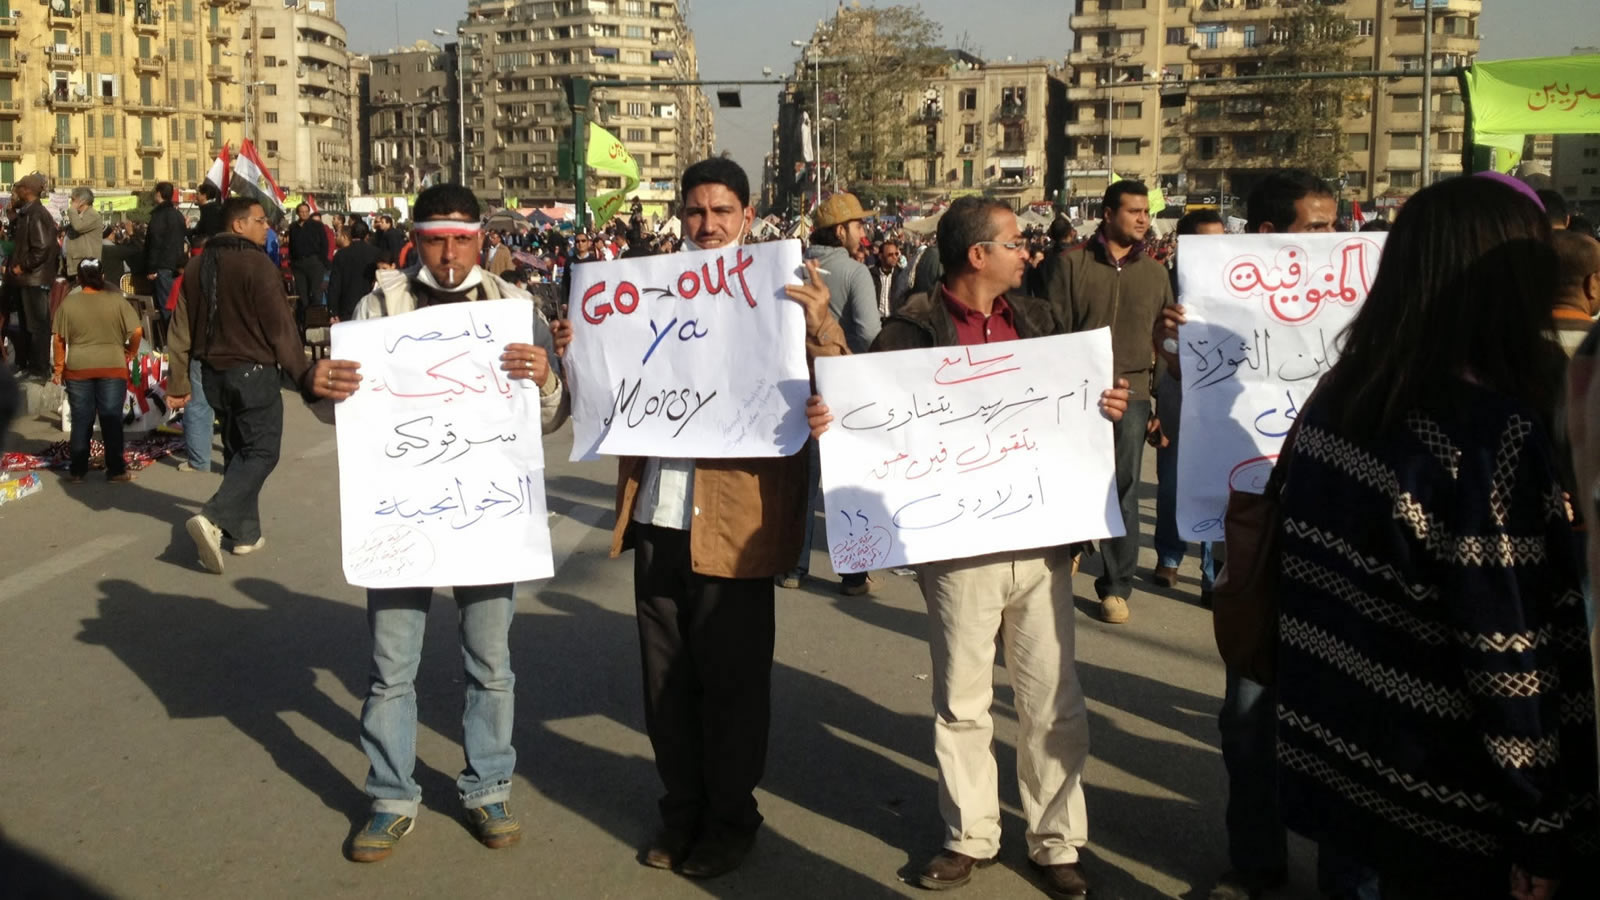 Protestors in Egypt with Signs in Arabic